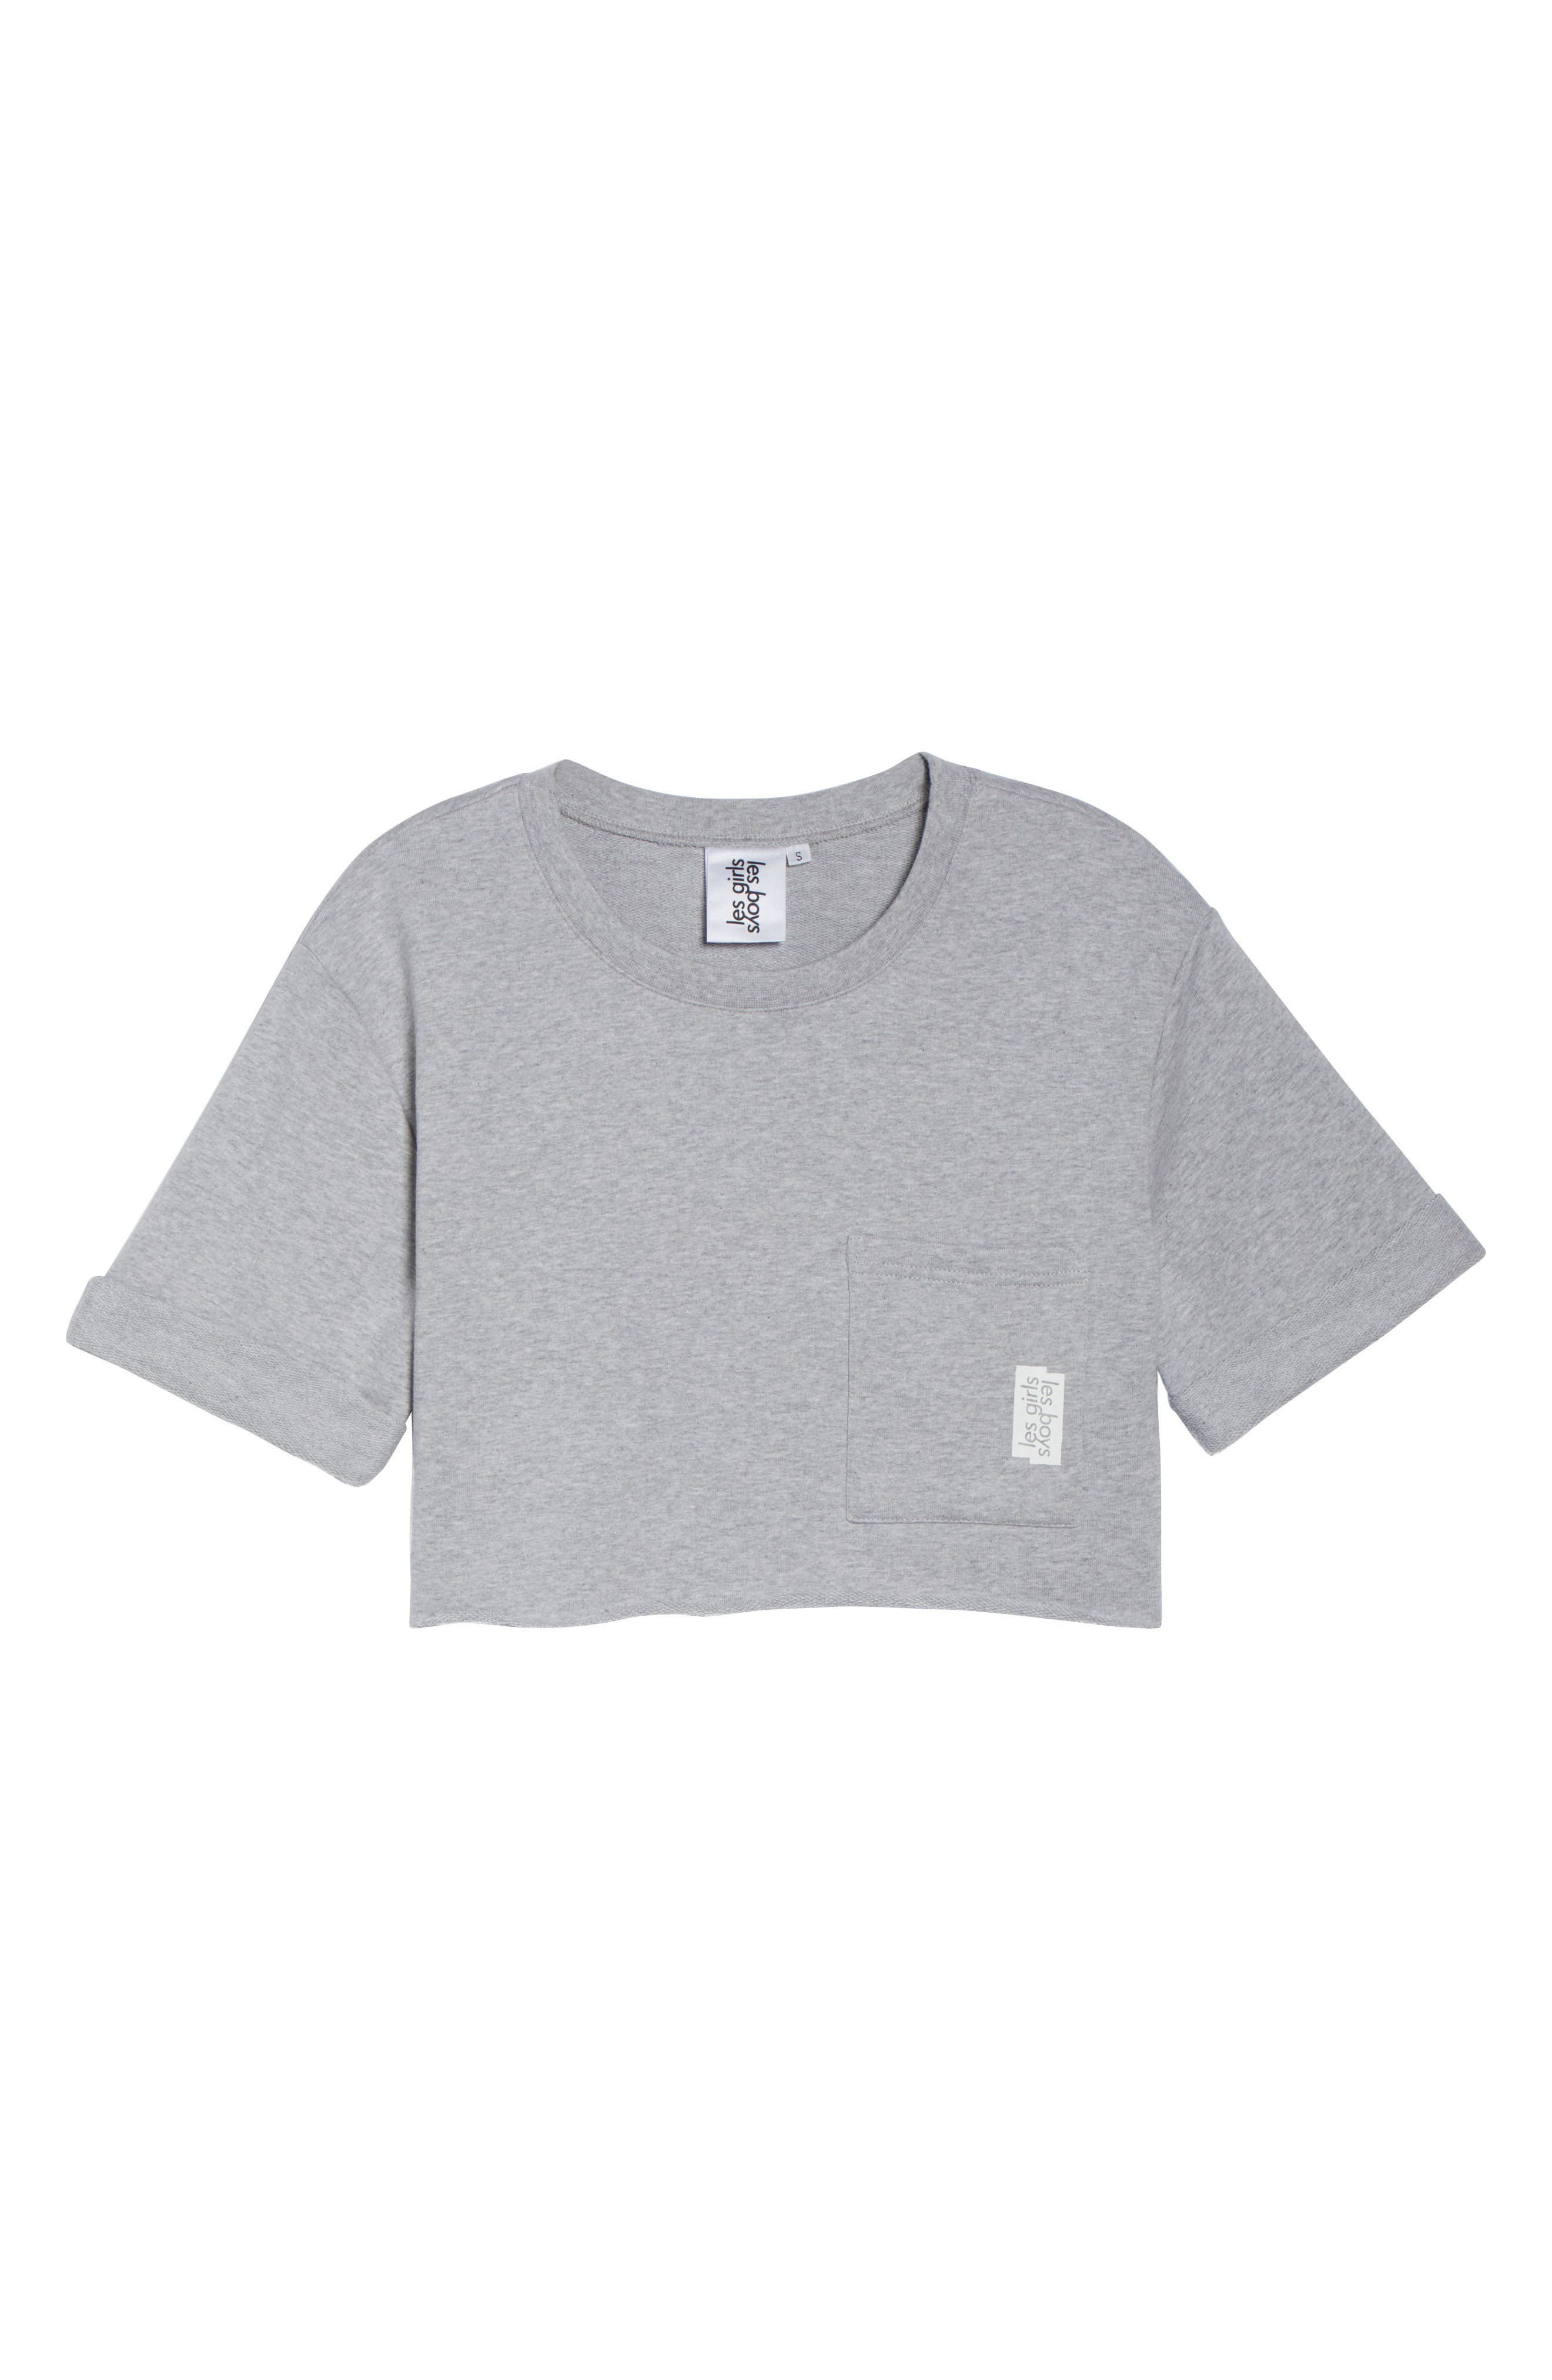 French Terry Crop Sweatshirt,                             Alternate thumbnail 6, color,                             022